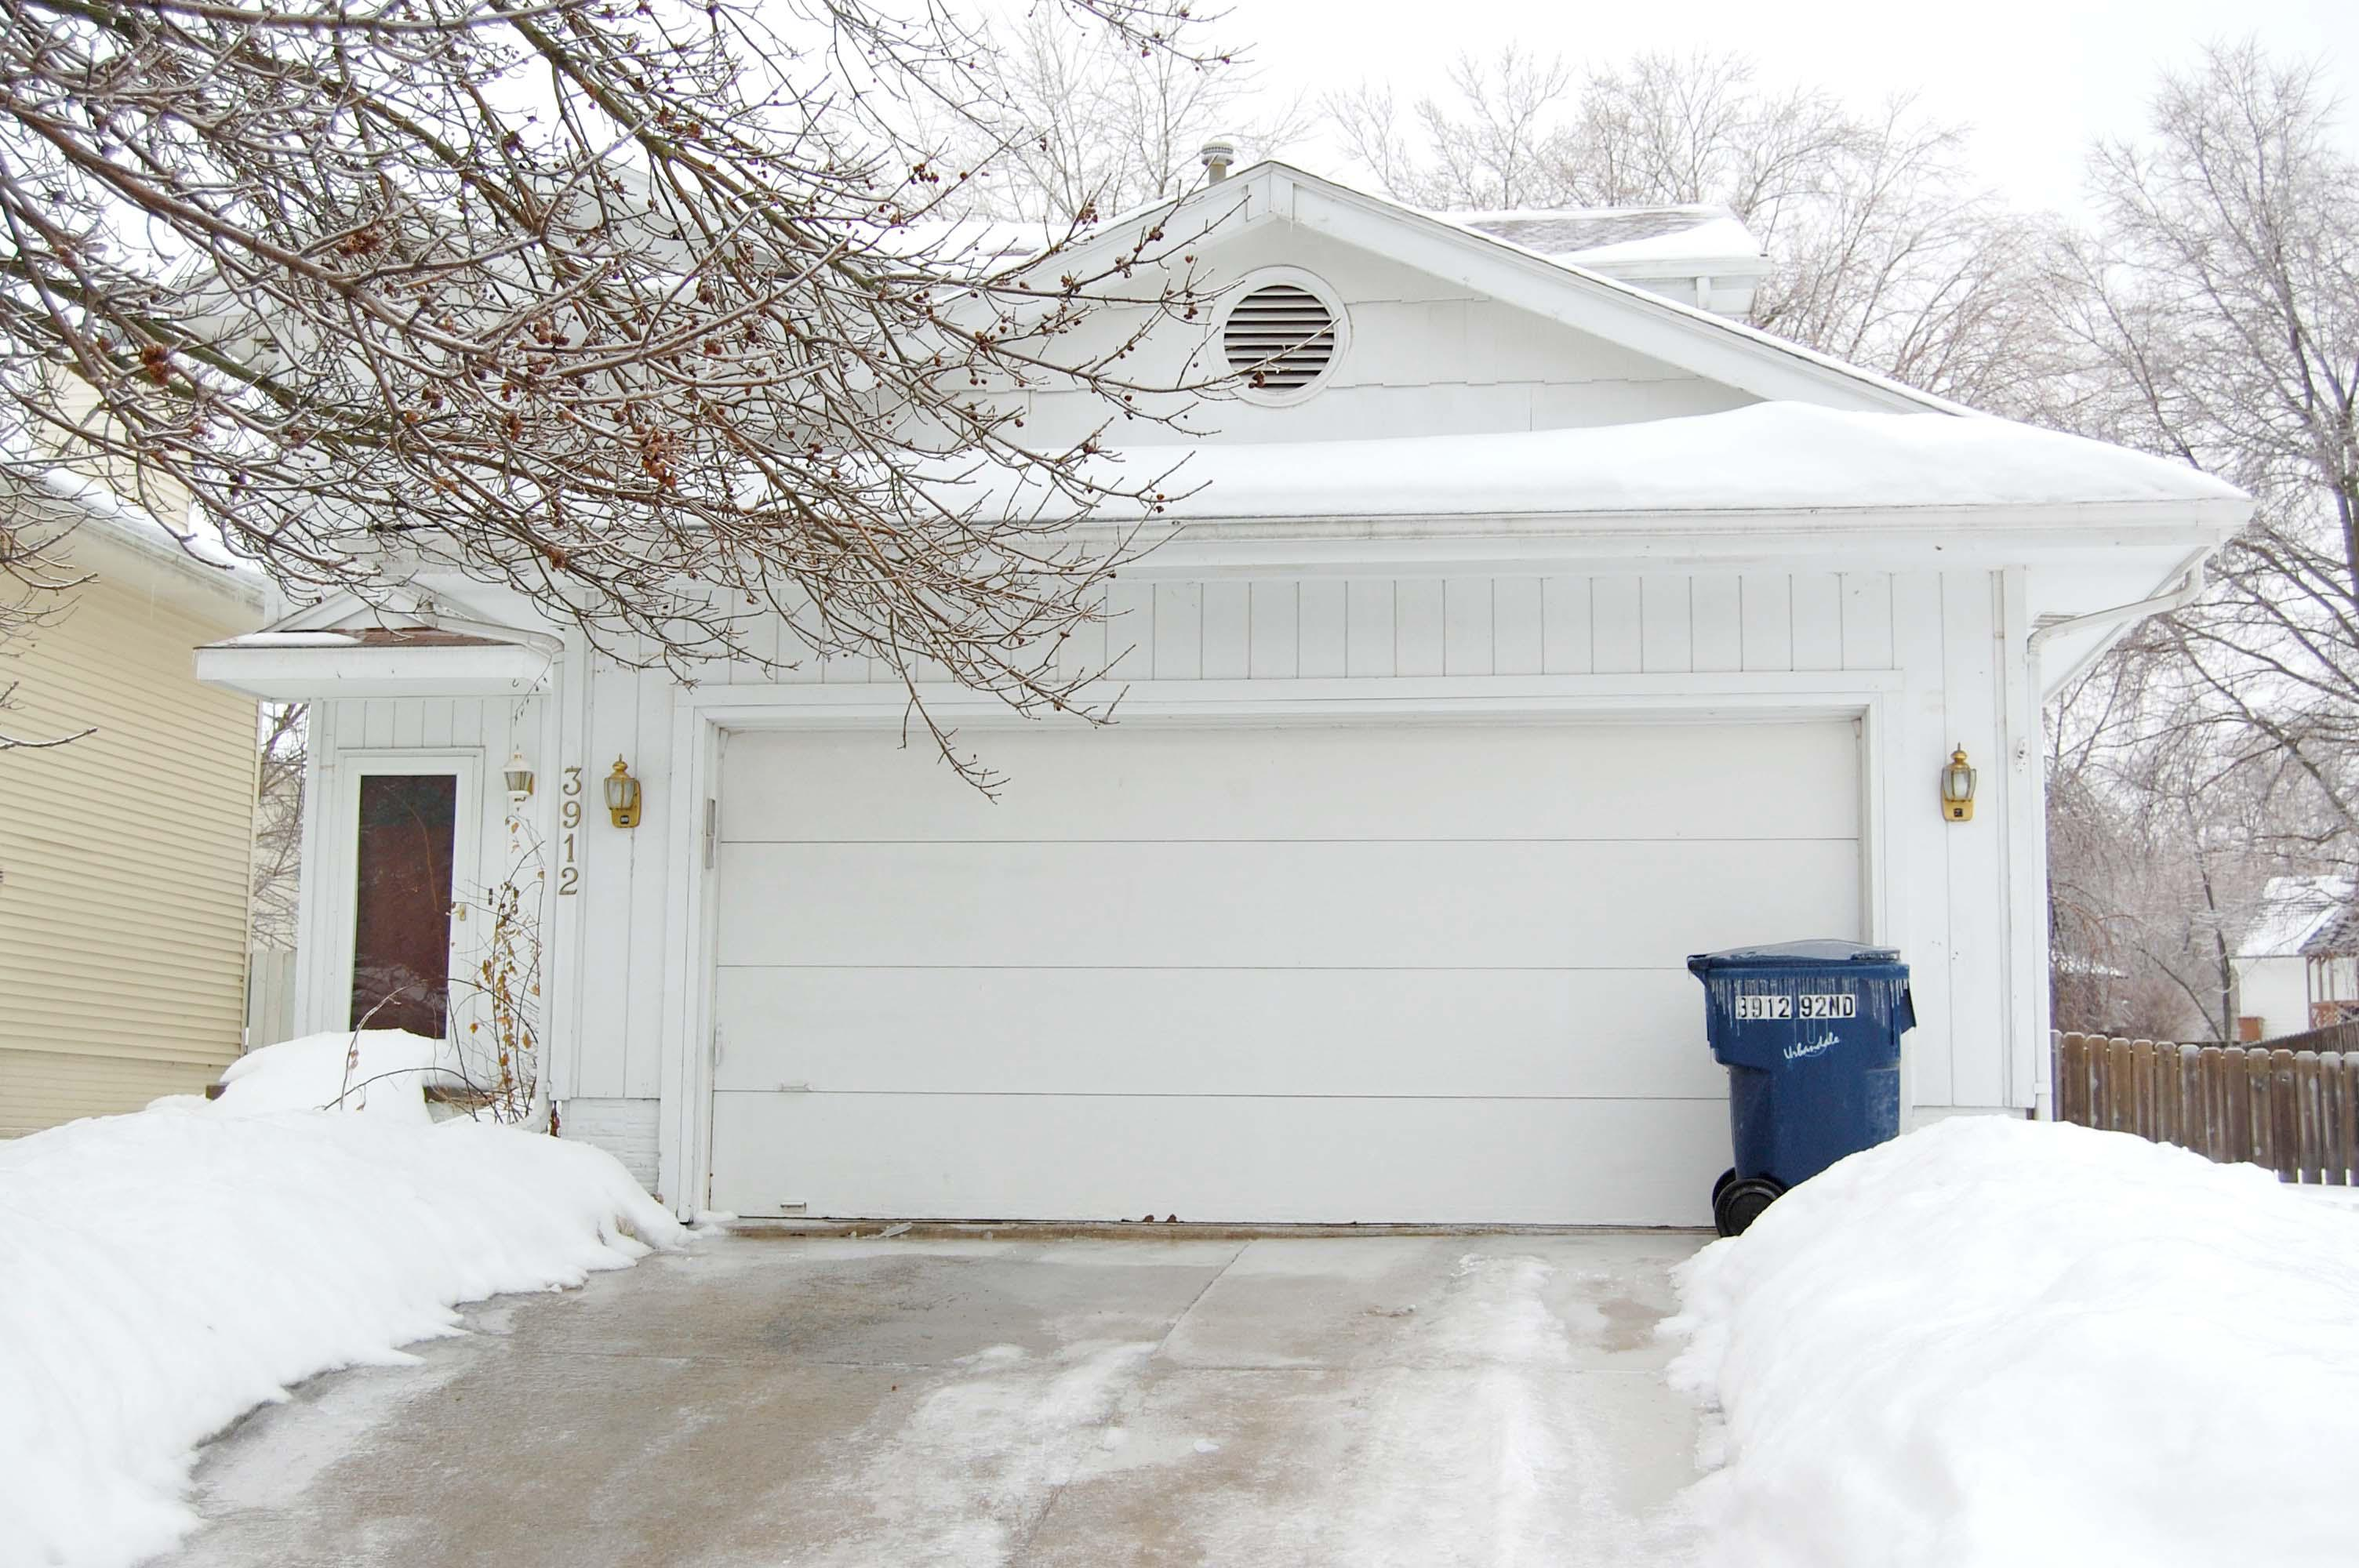 ForSaleByOwner (FSBO) home in Urbandale, IA at ForSaleByOwnerBuyersGuide.com